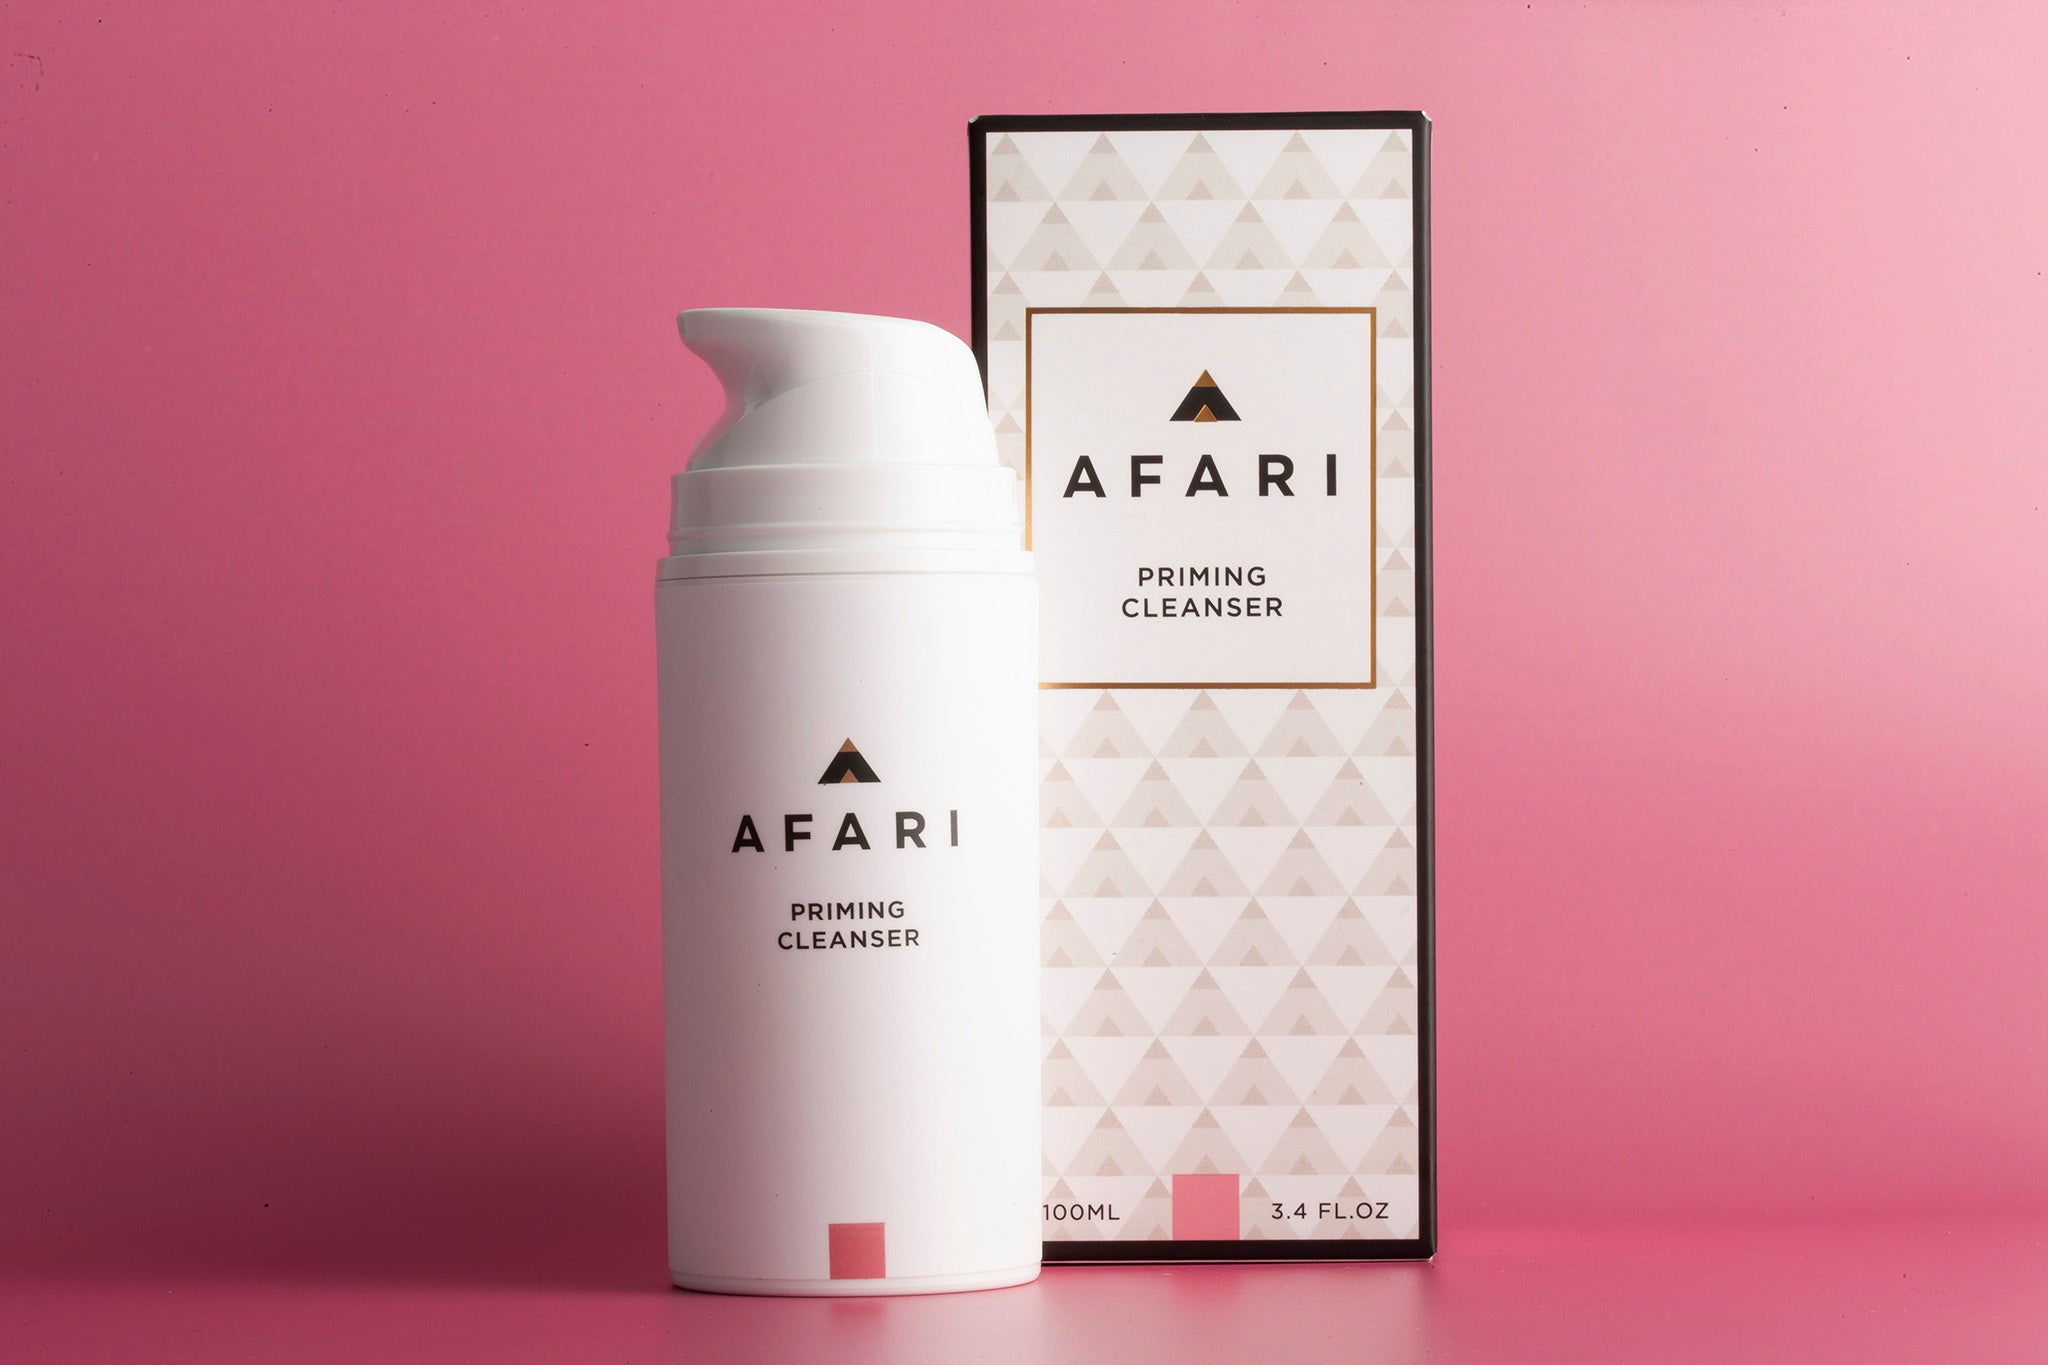 Priming Cleanser - Shop Face online - Afari Skincare South Africa active ingredient, afari, all skin types, clean, cleanser, color_#71807E, priming cleanser